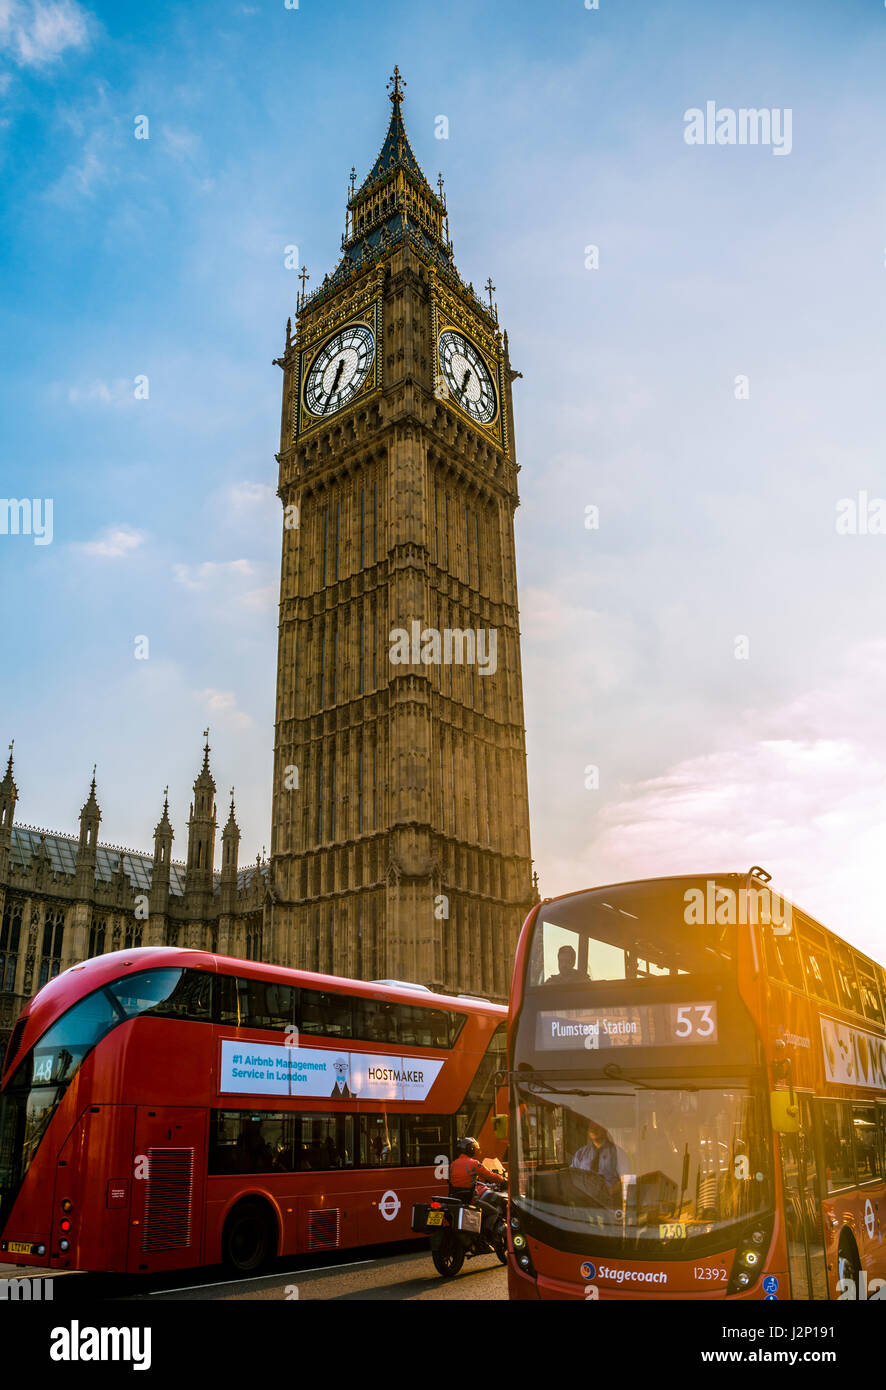 Red double decker bus in front of Big Ben, Houses of Parliament, backlit, evening light, City of Westminster, London - Stock Image